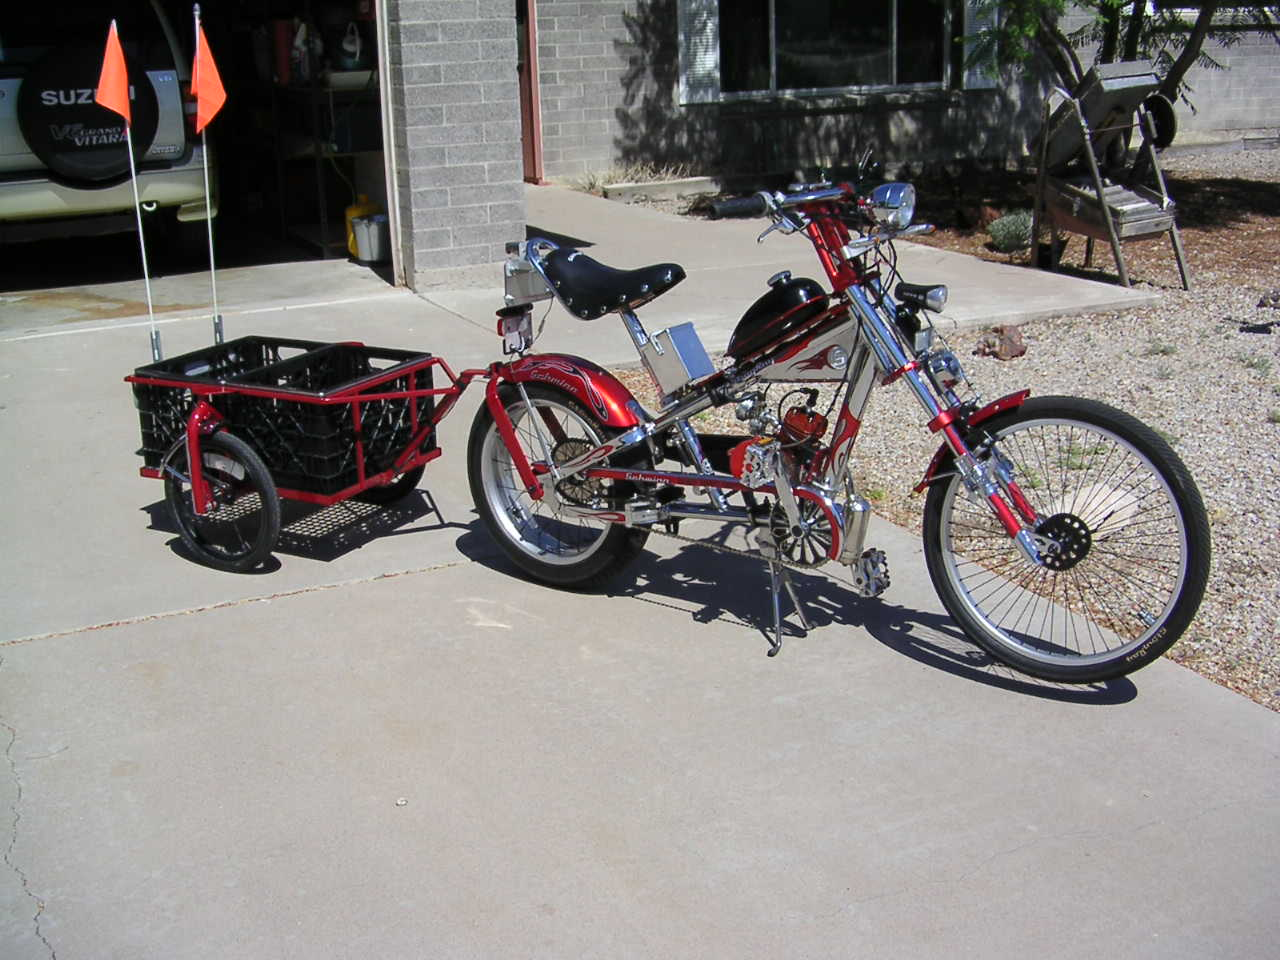 Chopper Motor Pictures Of Motorized Bicycles Bicycle Motor Kits Gas